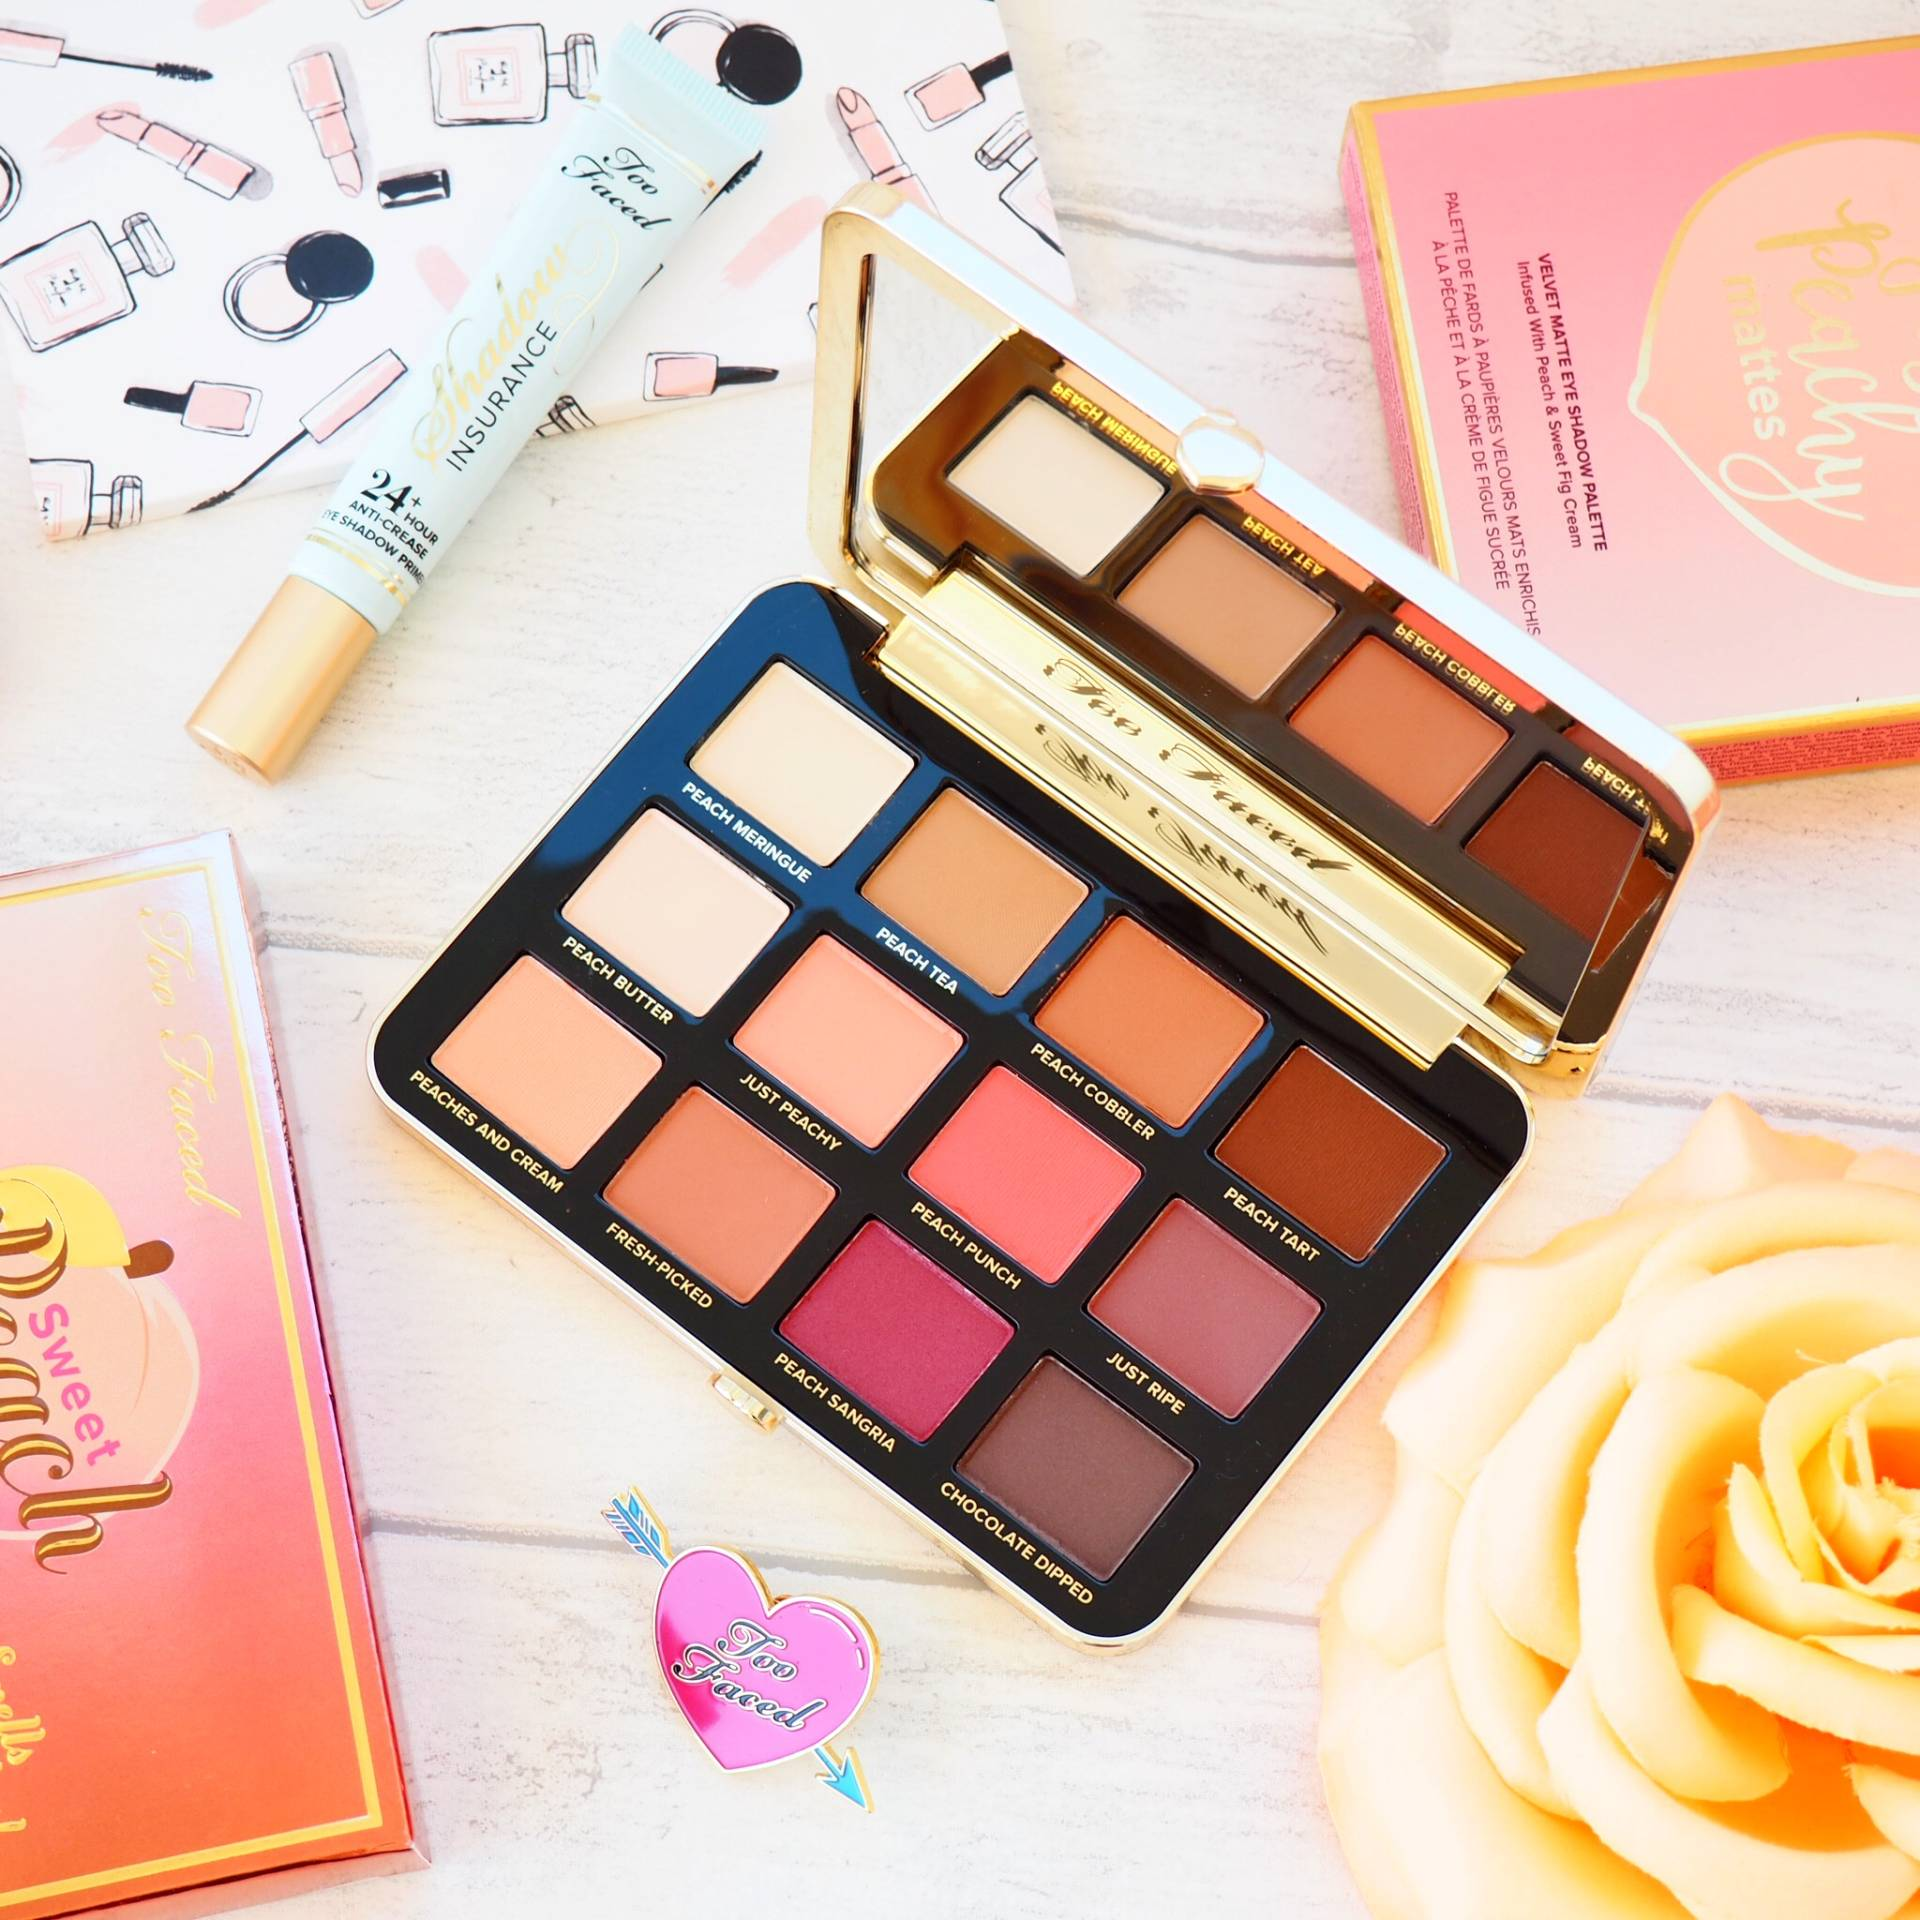 Too Faced Peachy Matte Eyeshadow Palette